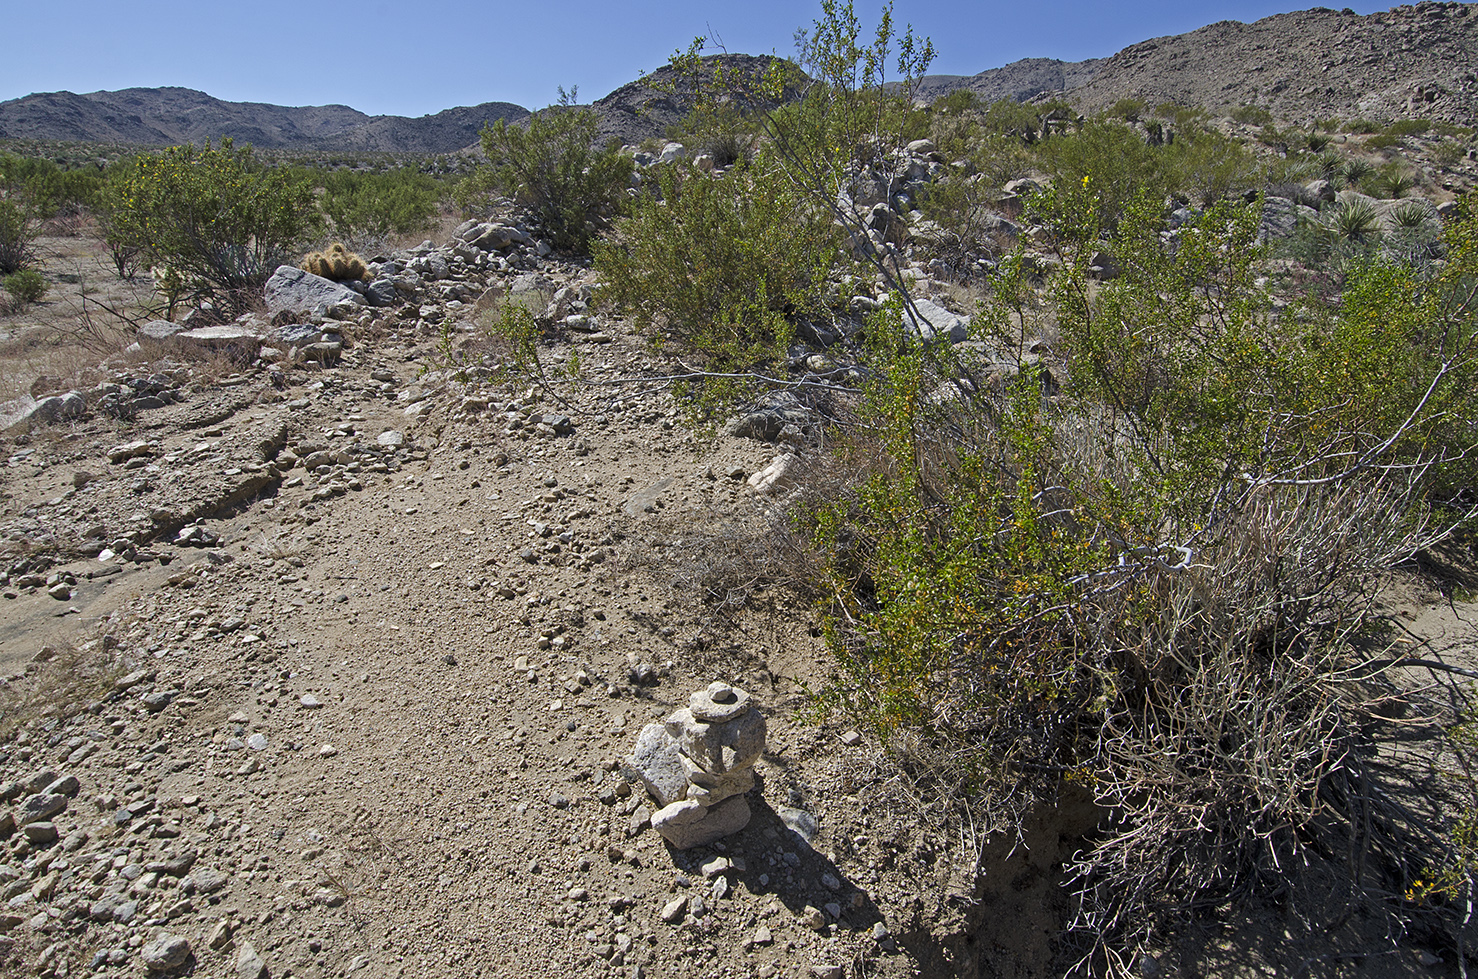 Another small rock pile marks the spot where the mining road begins to climb up the small ridge that will parallel the wash.